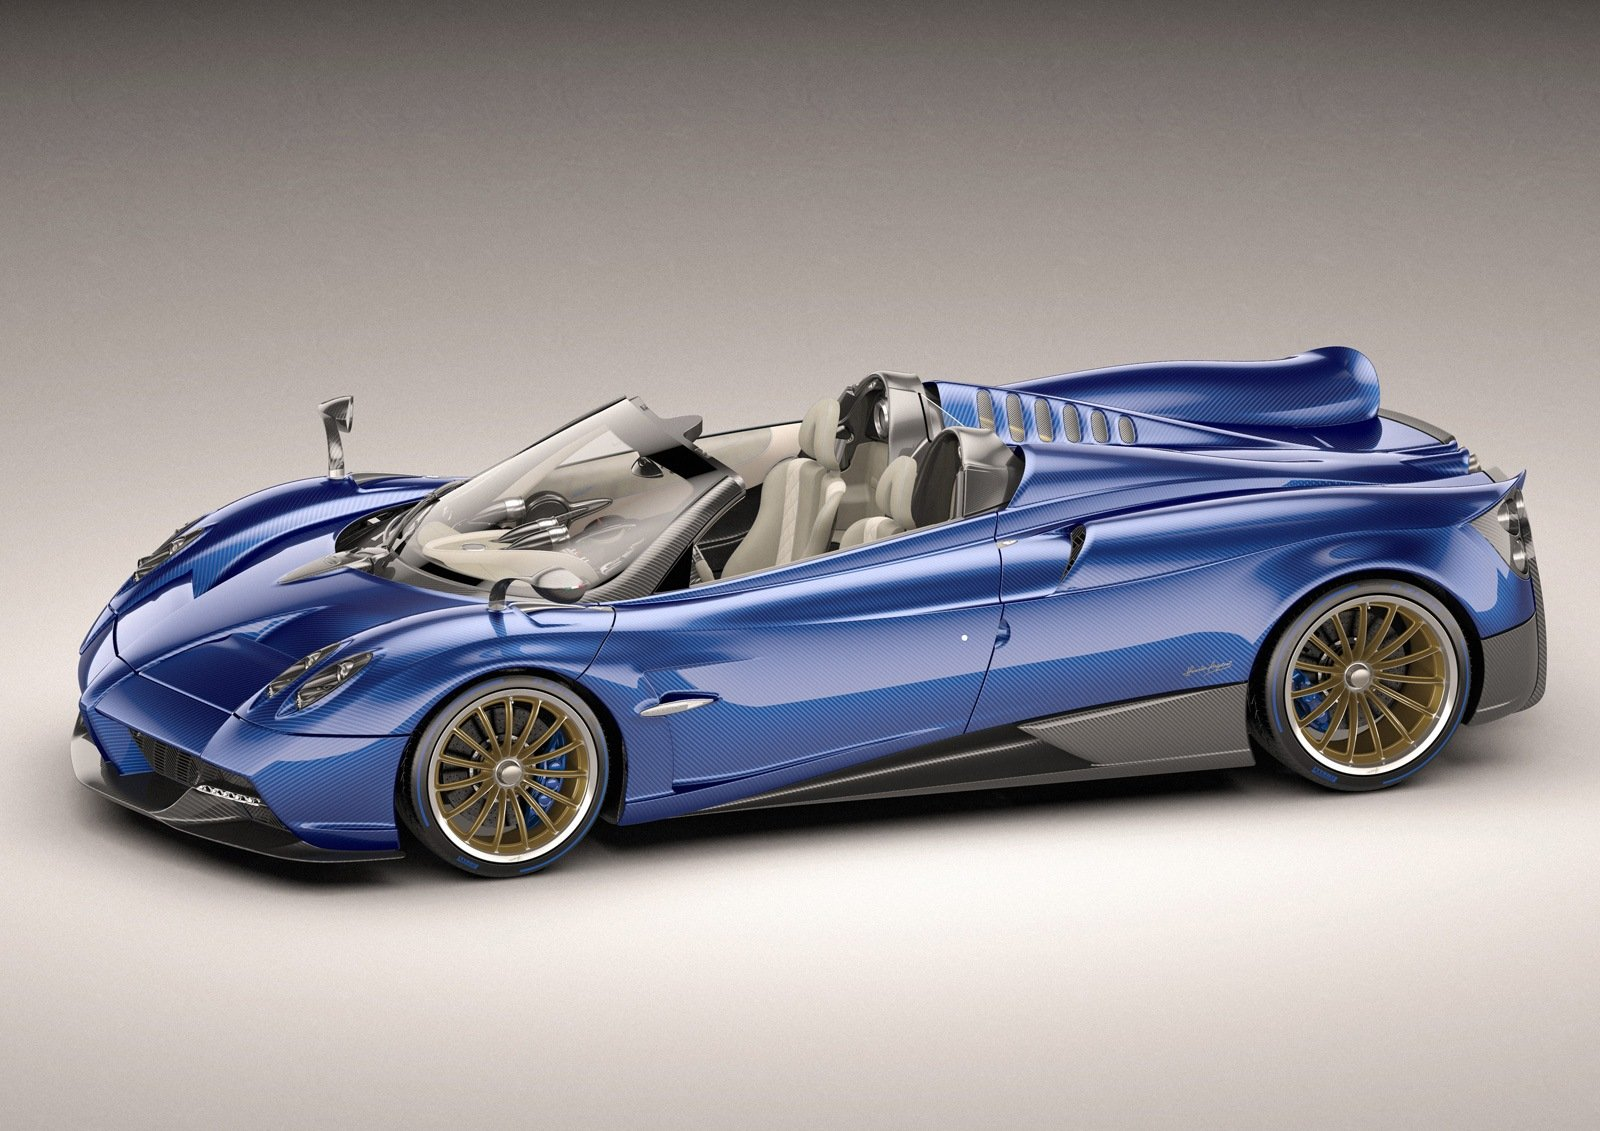 Pagani Huayra 2019 >> Top 10 Most Expensive Cars in the World » AutoGuide.com News